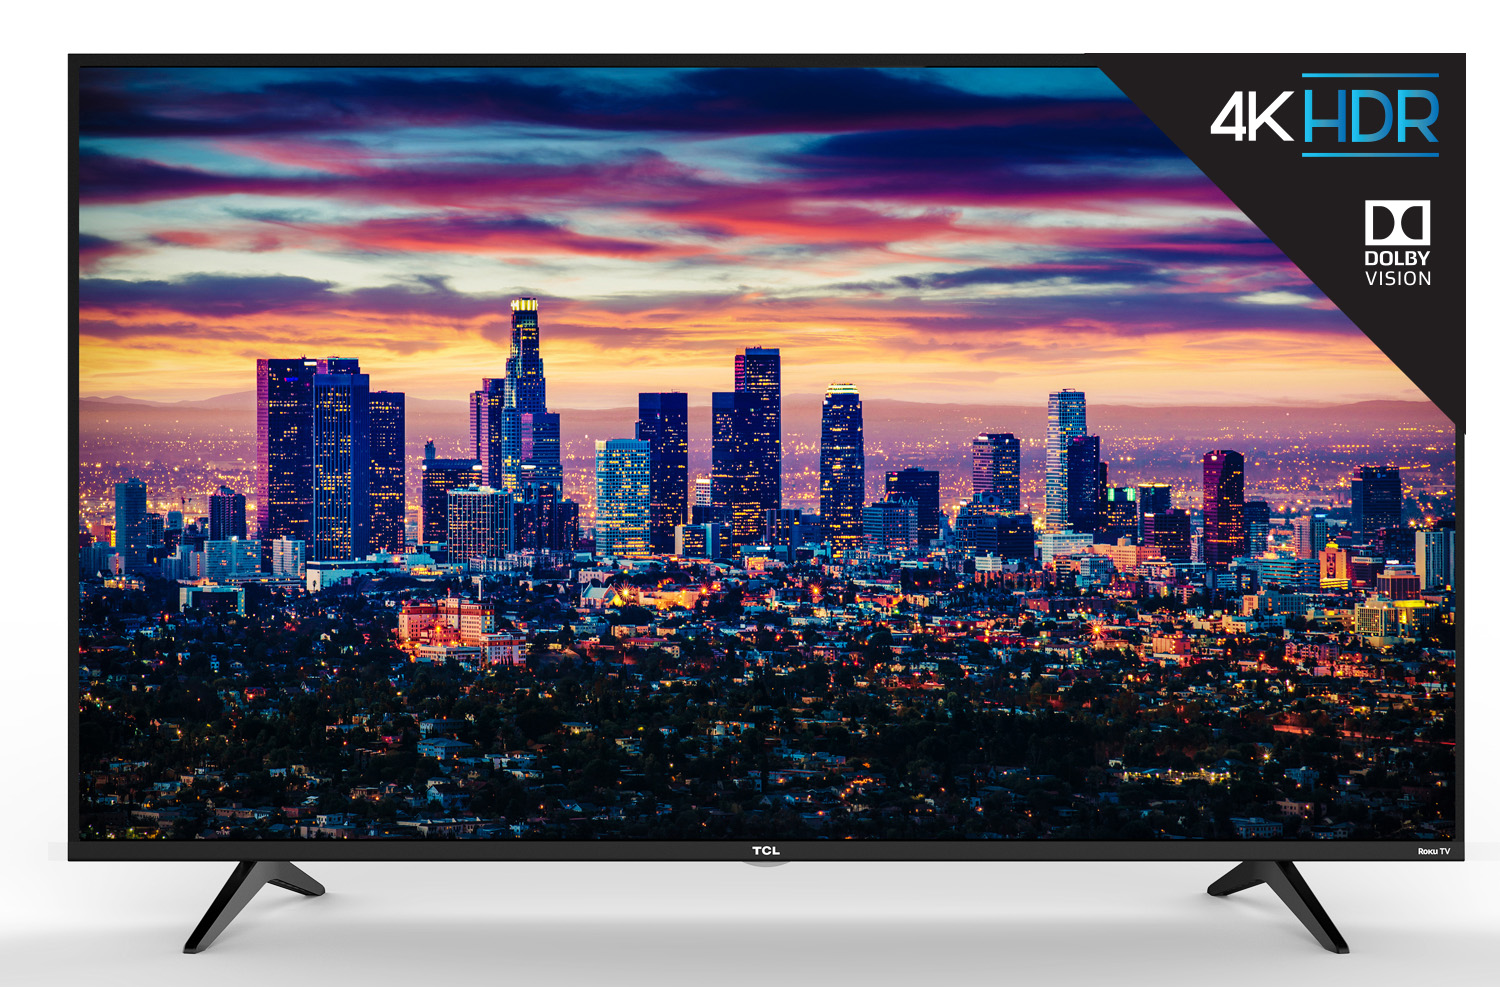 TCL 5 series (2018 Roku TV) review: | Home Theater 365